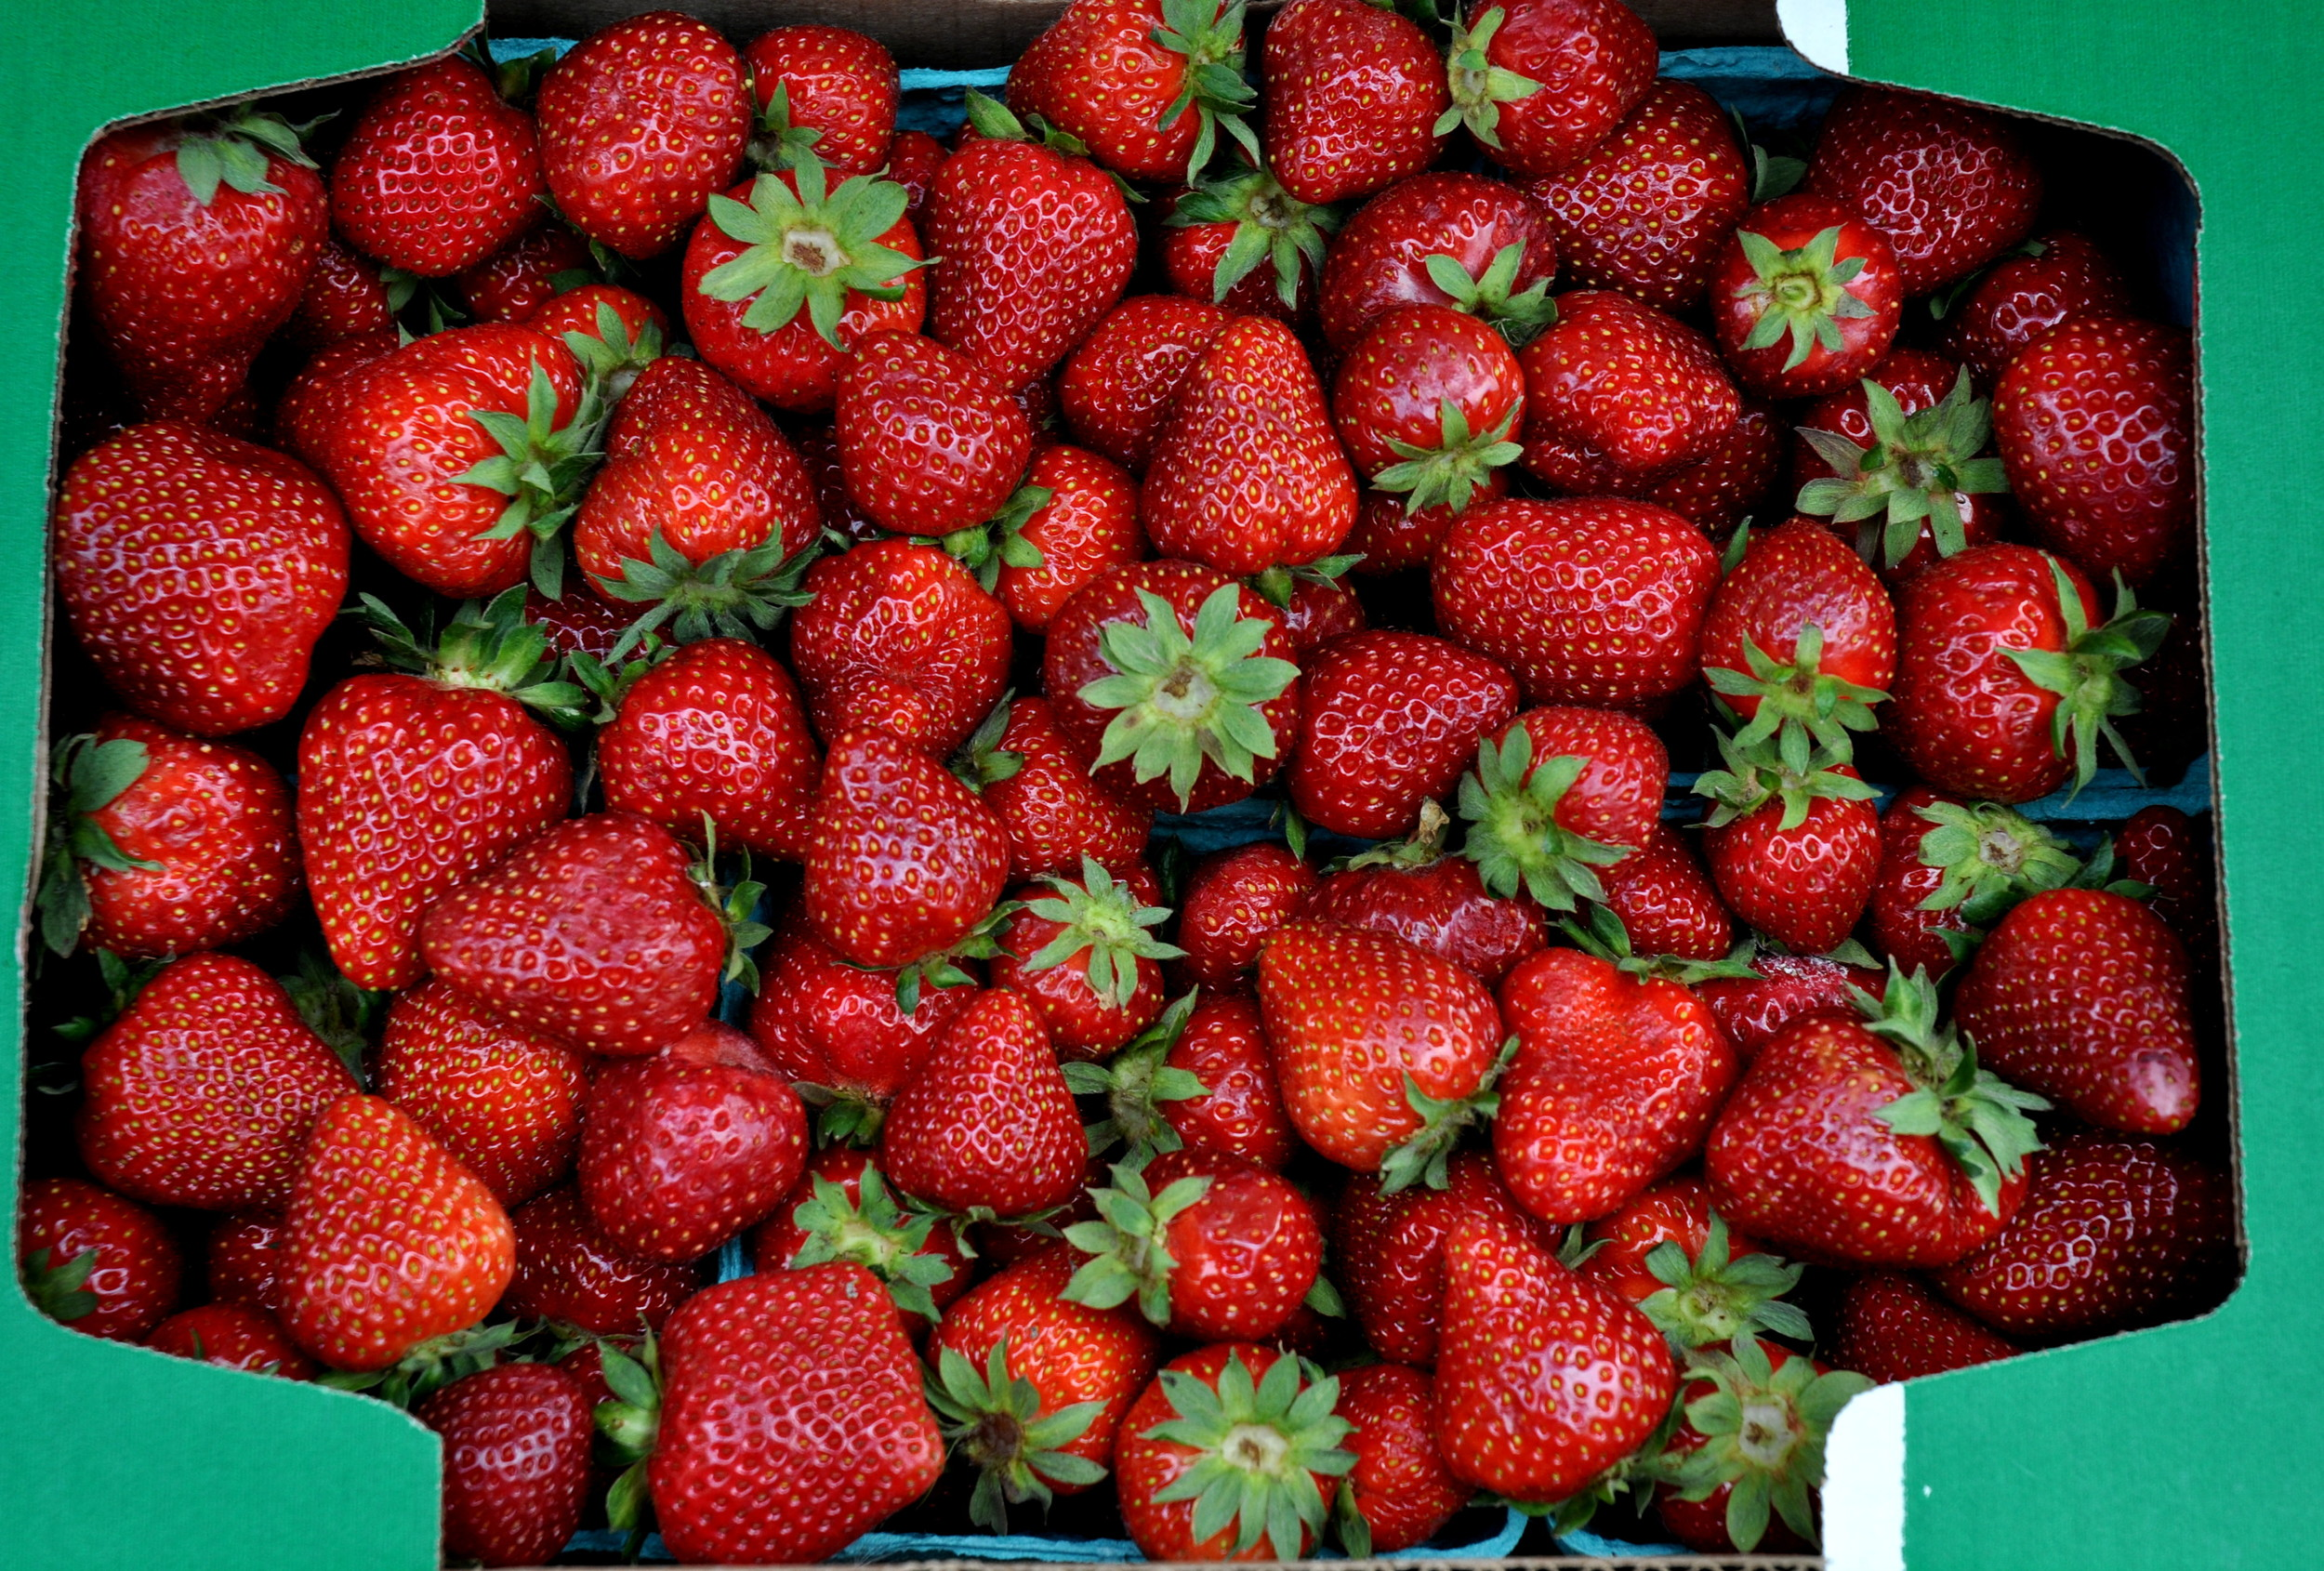 Certified organic strawberries from Gaia's Harmony Farm. Photo copyright 2013 by Zachary D. Lyons.